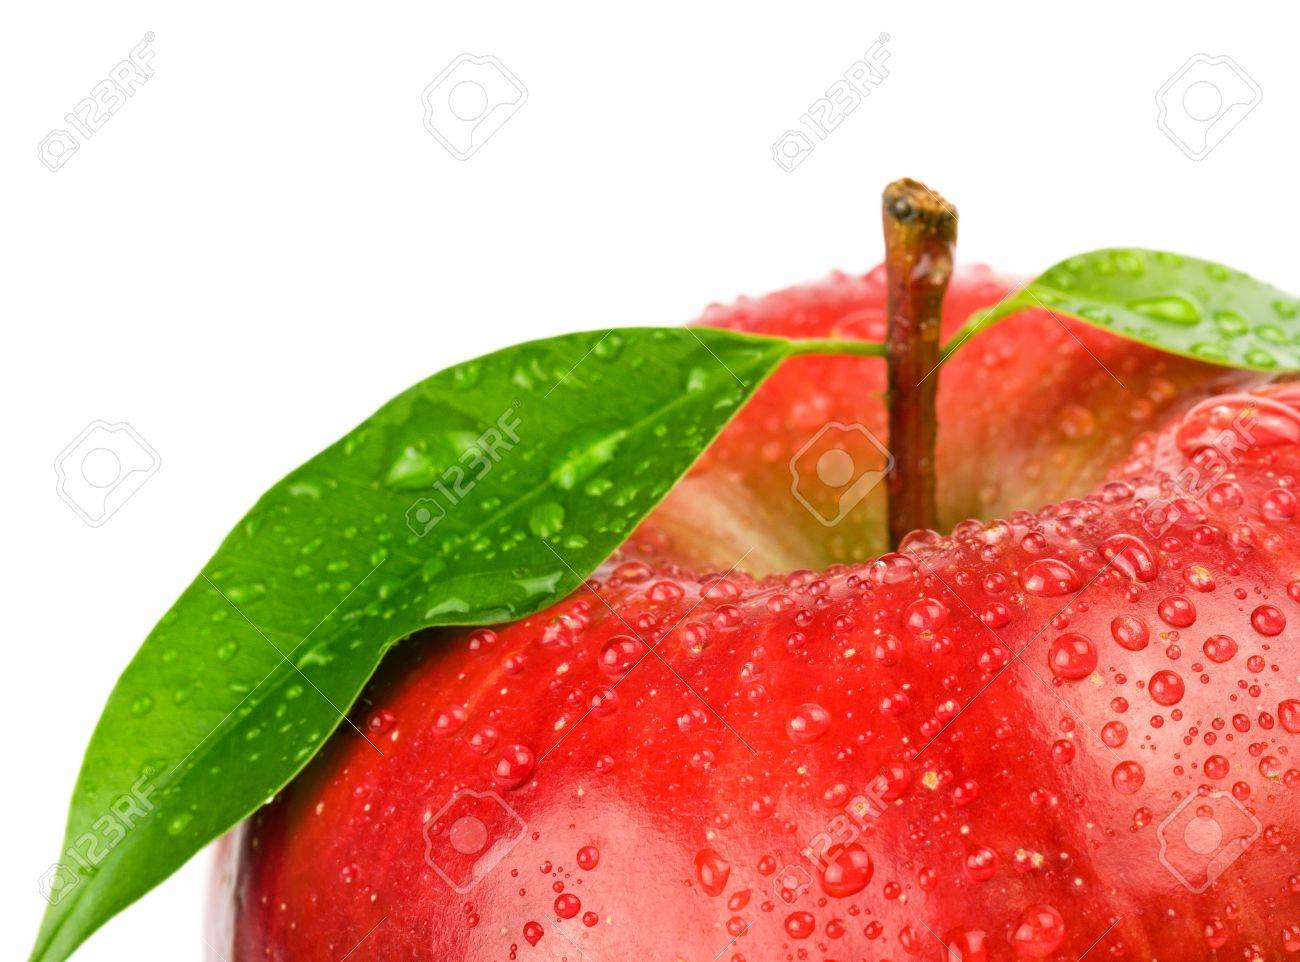 Ripe red apple on a white background - 9105034